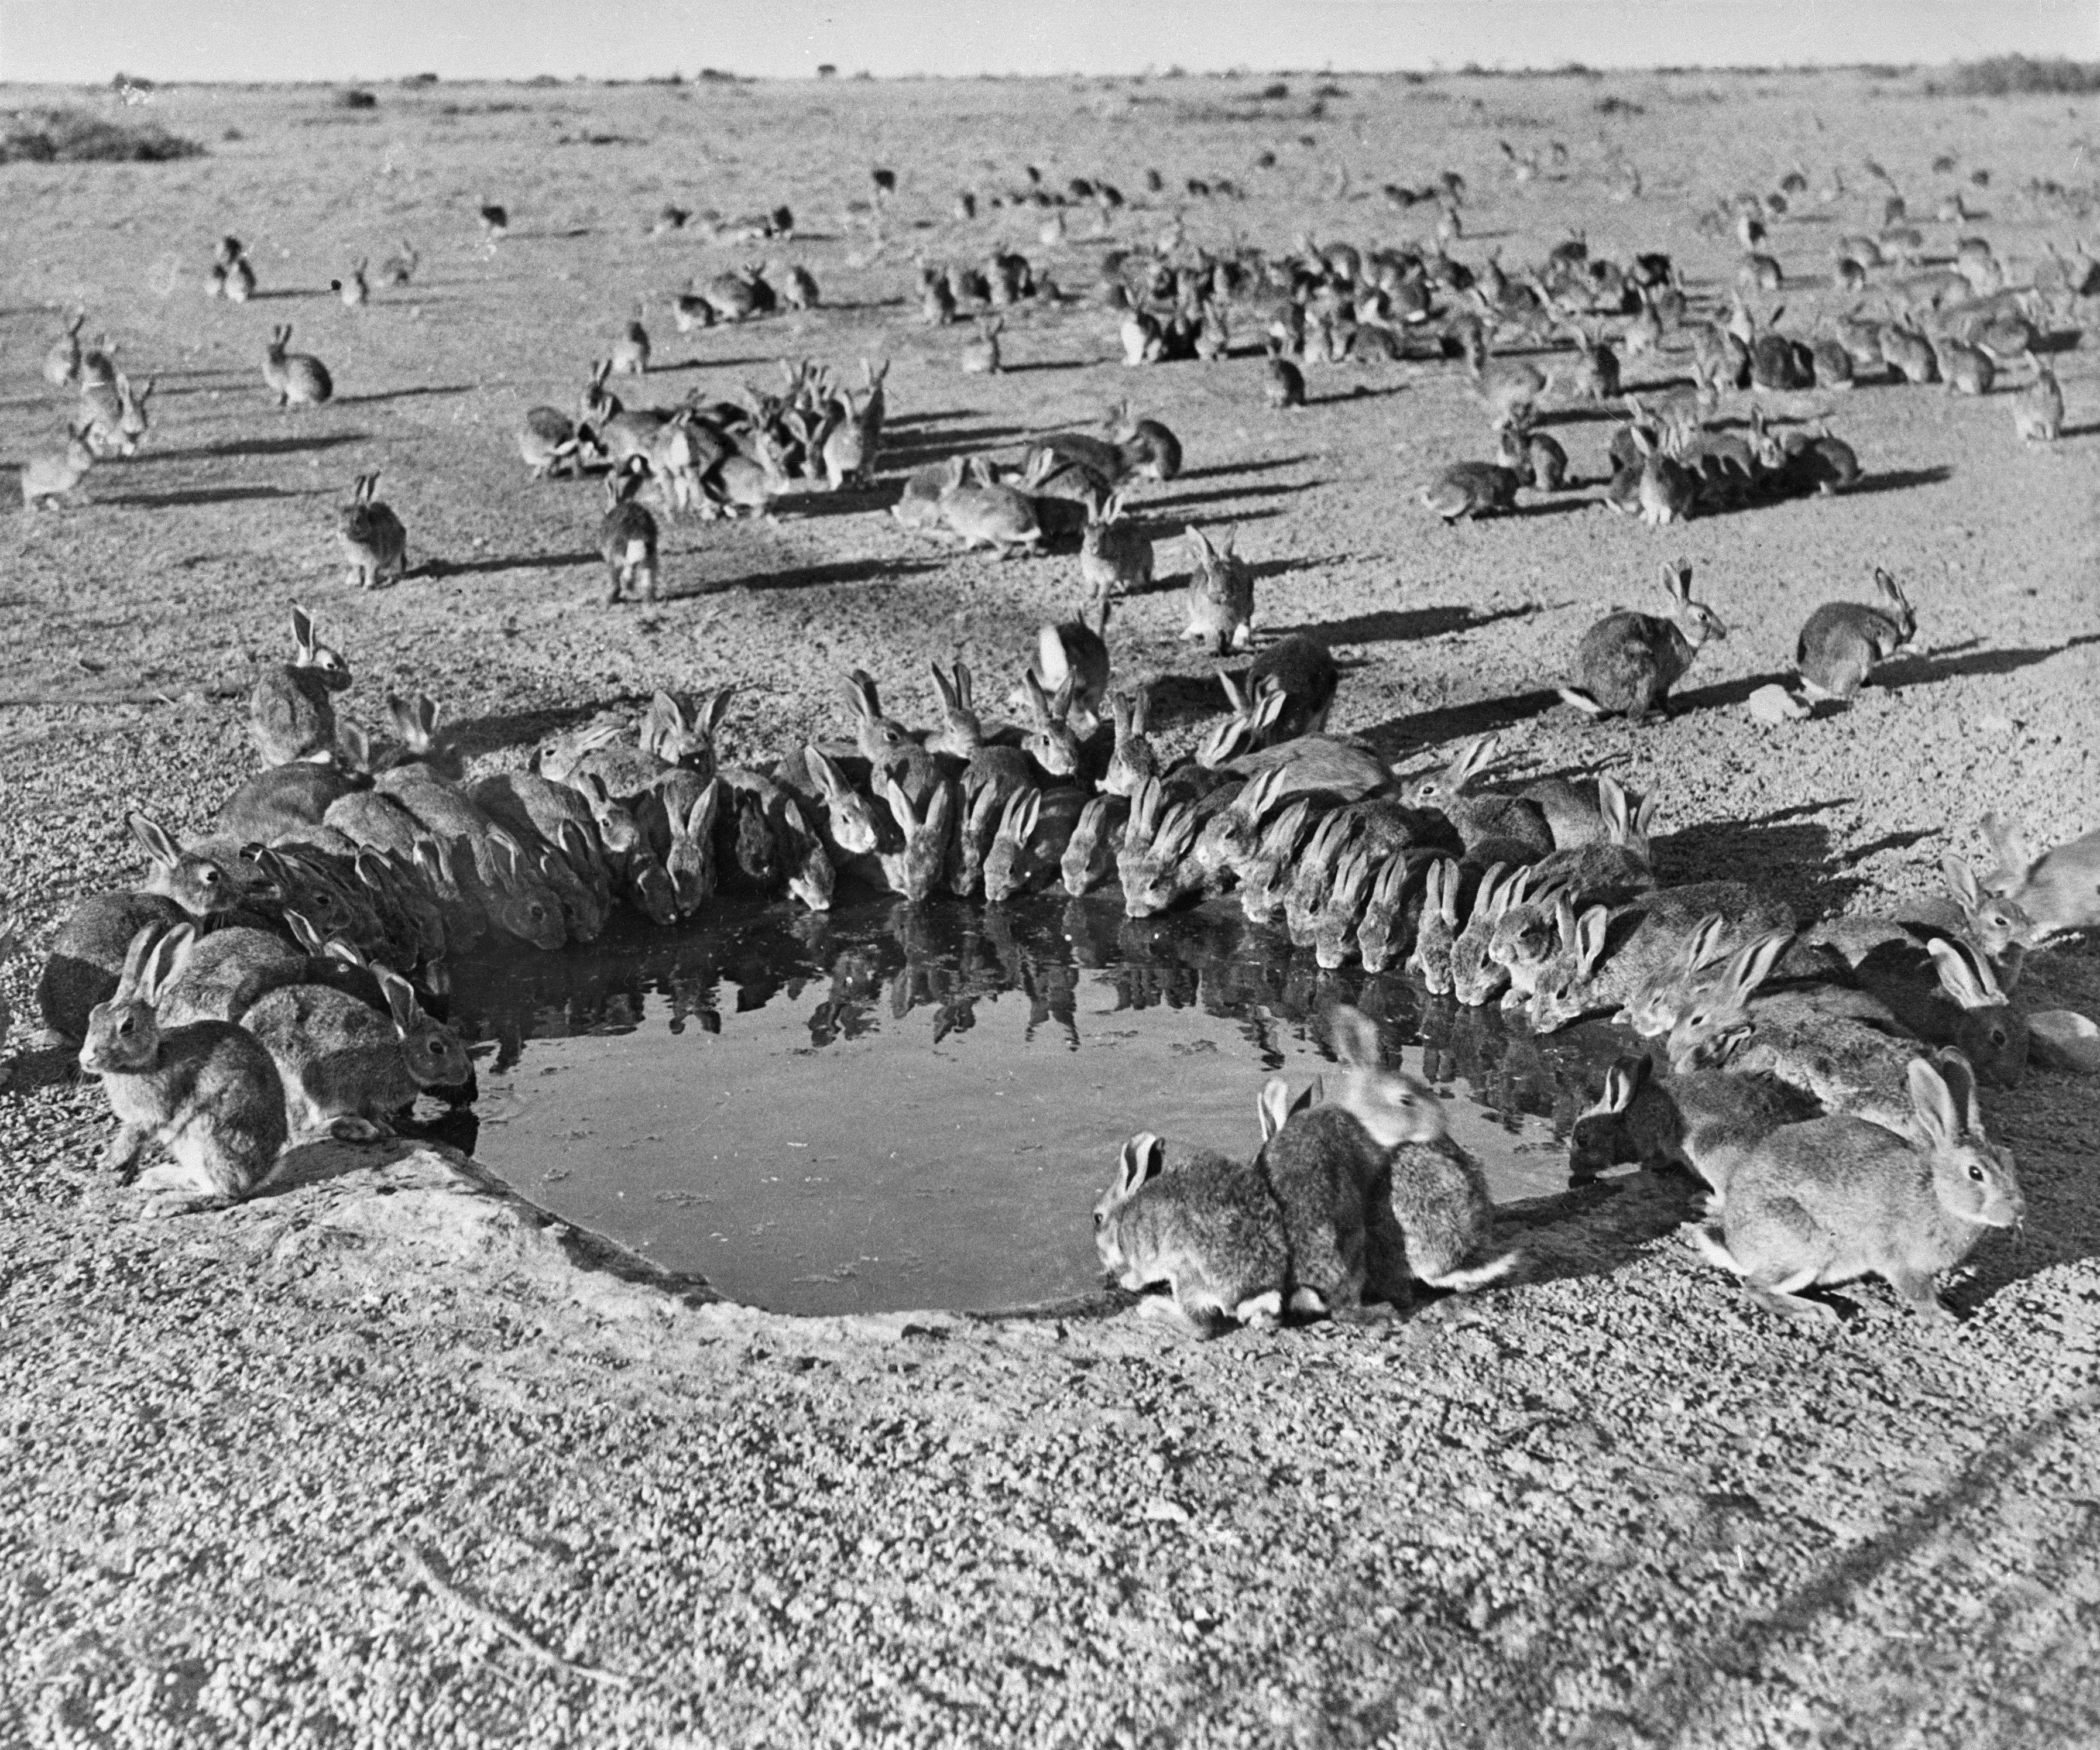 Black and white photo of rabbits clustering around a small waterhole